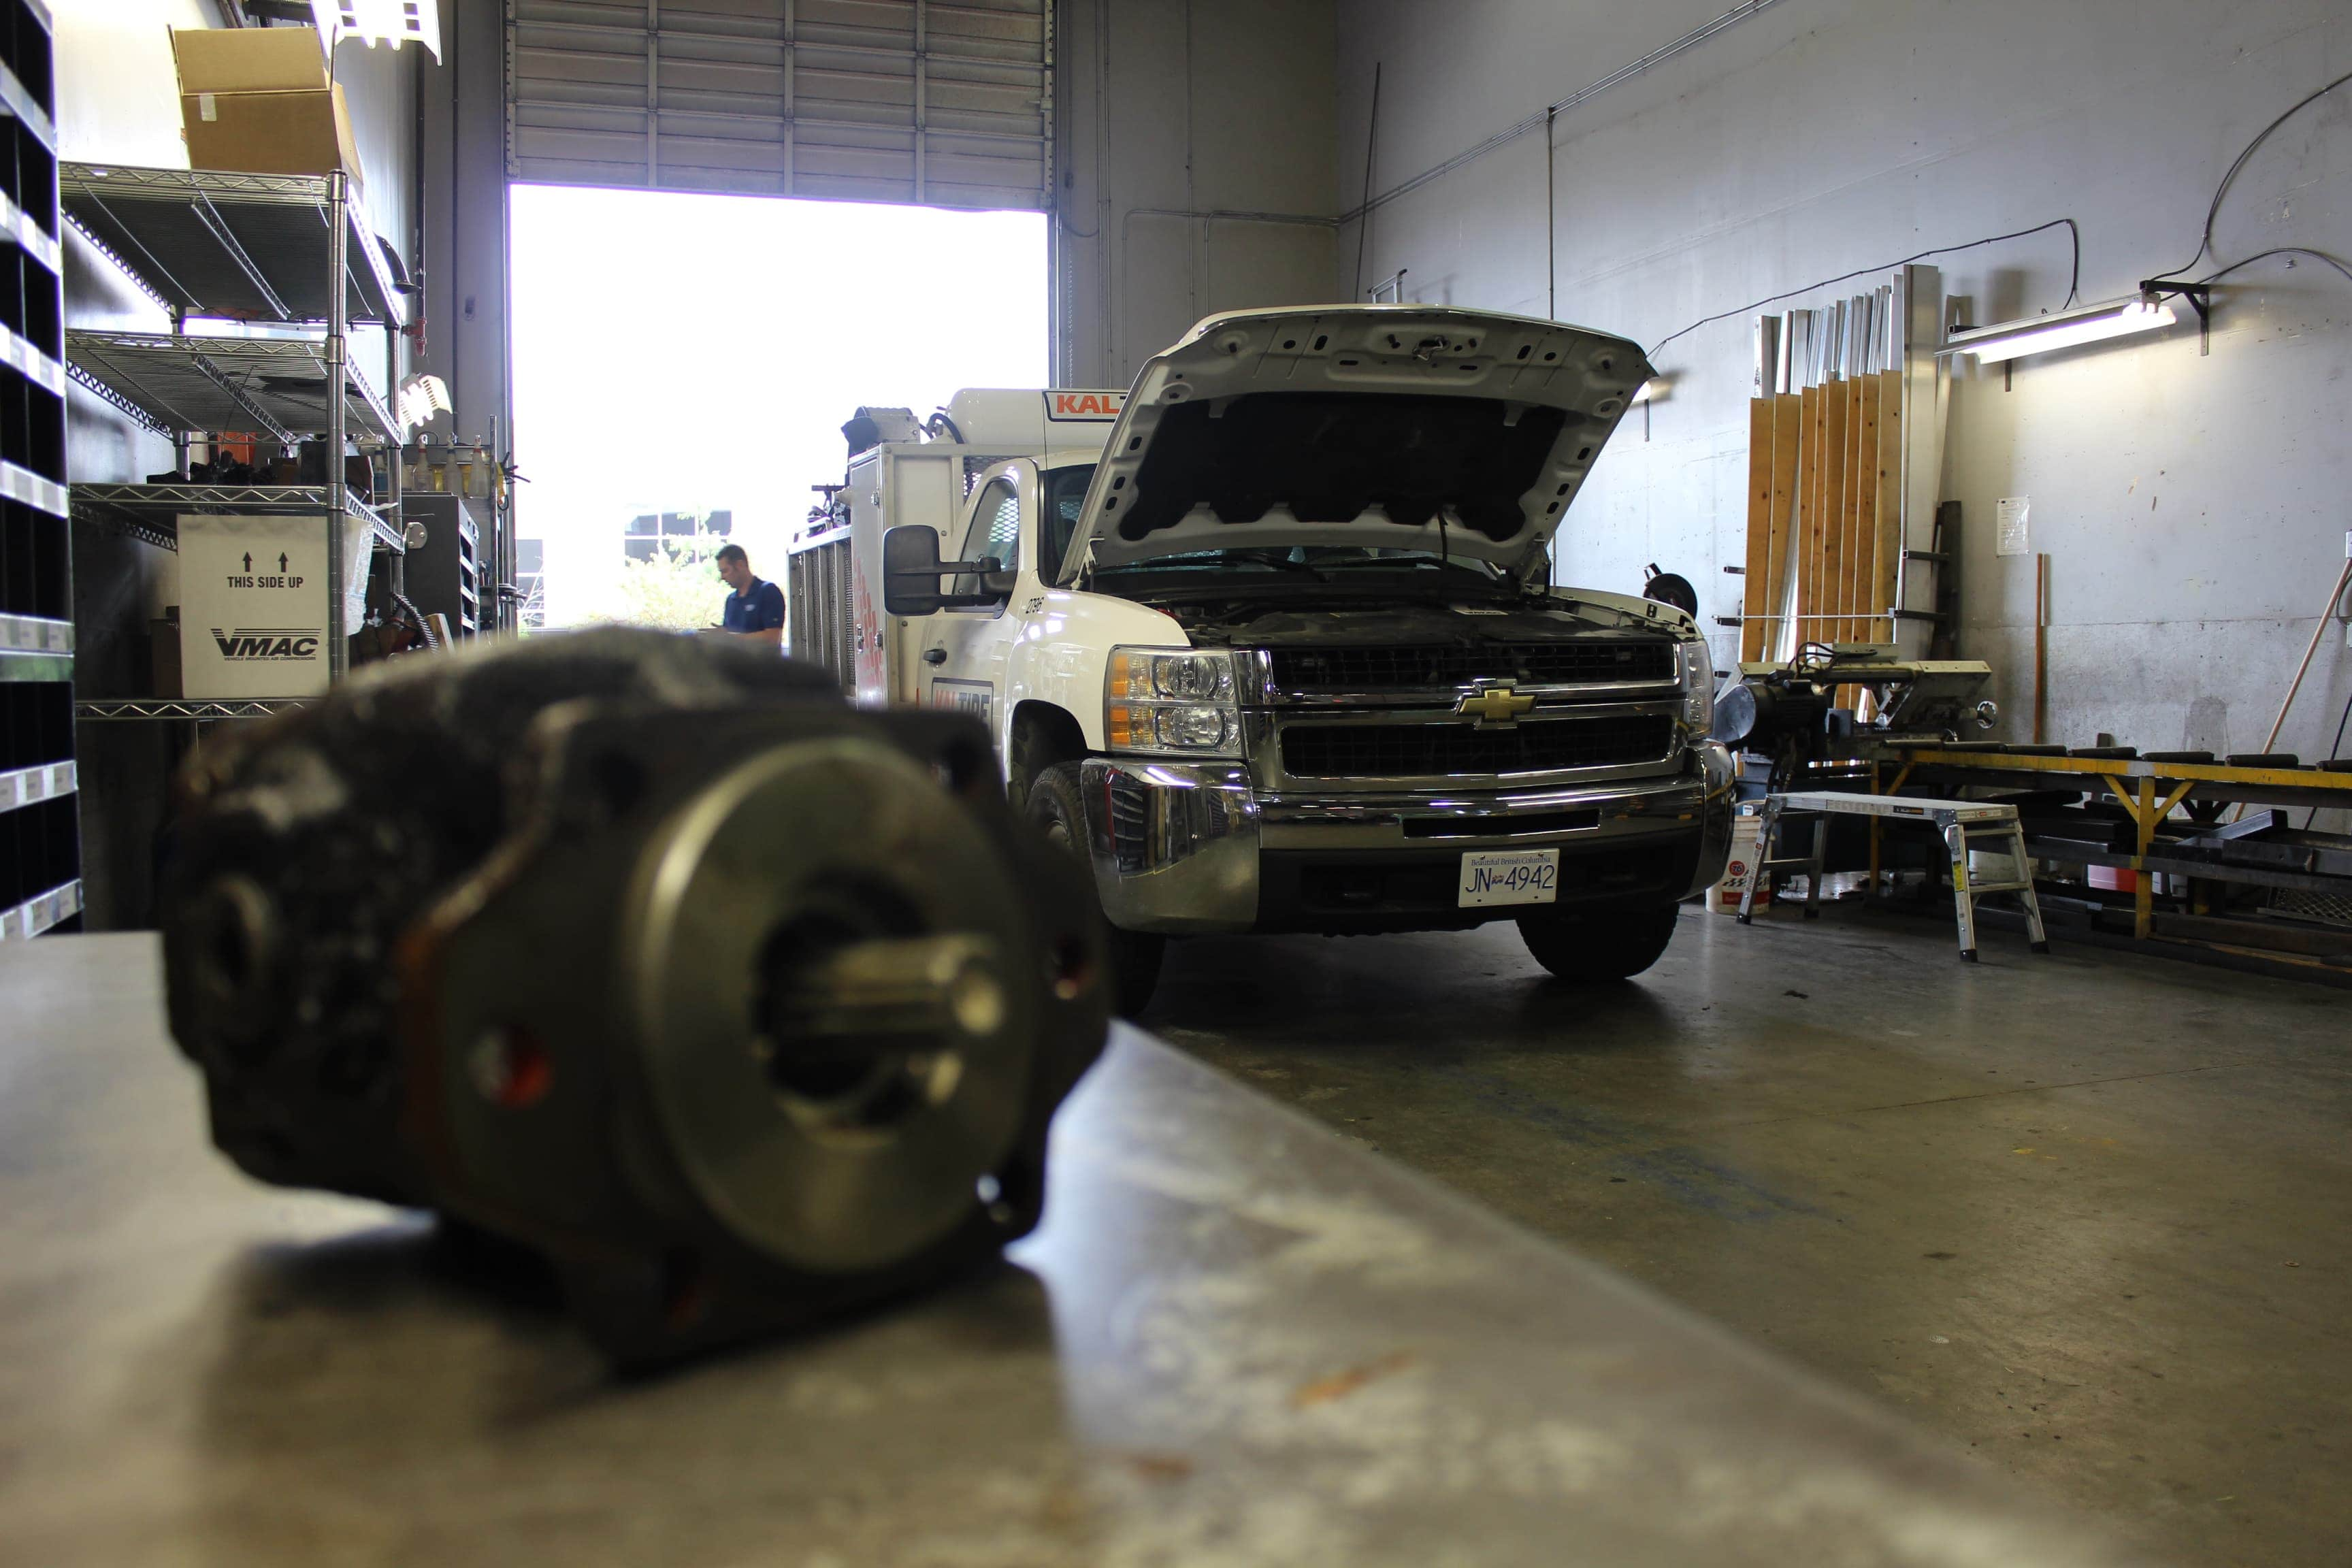 Work truck being repaired on in the shop